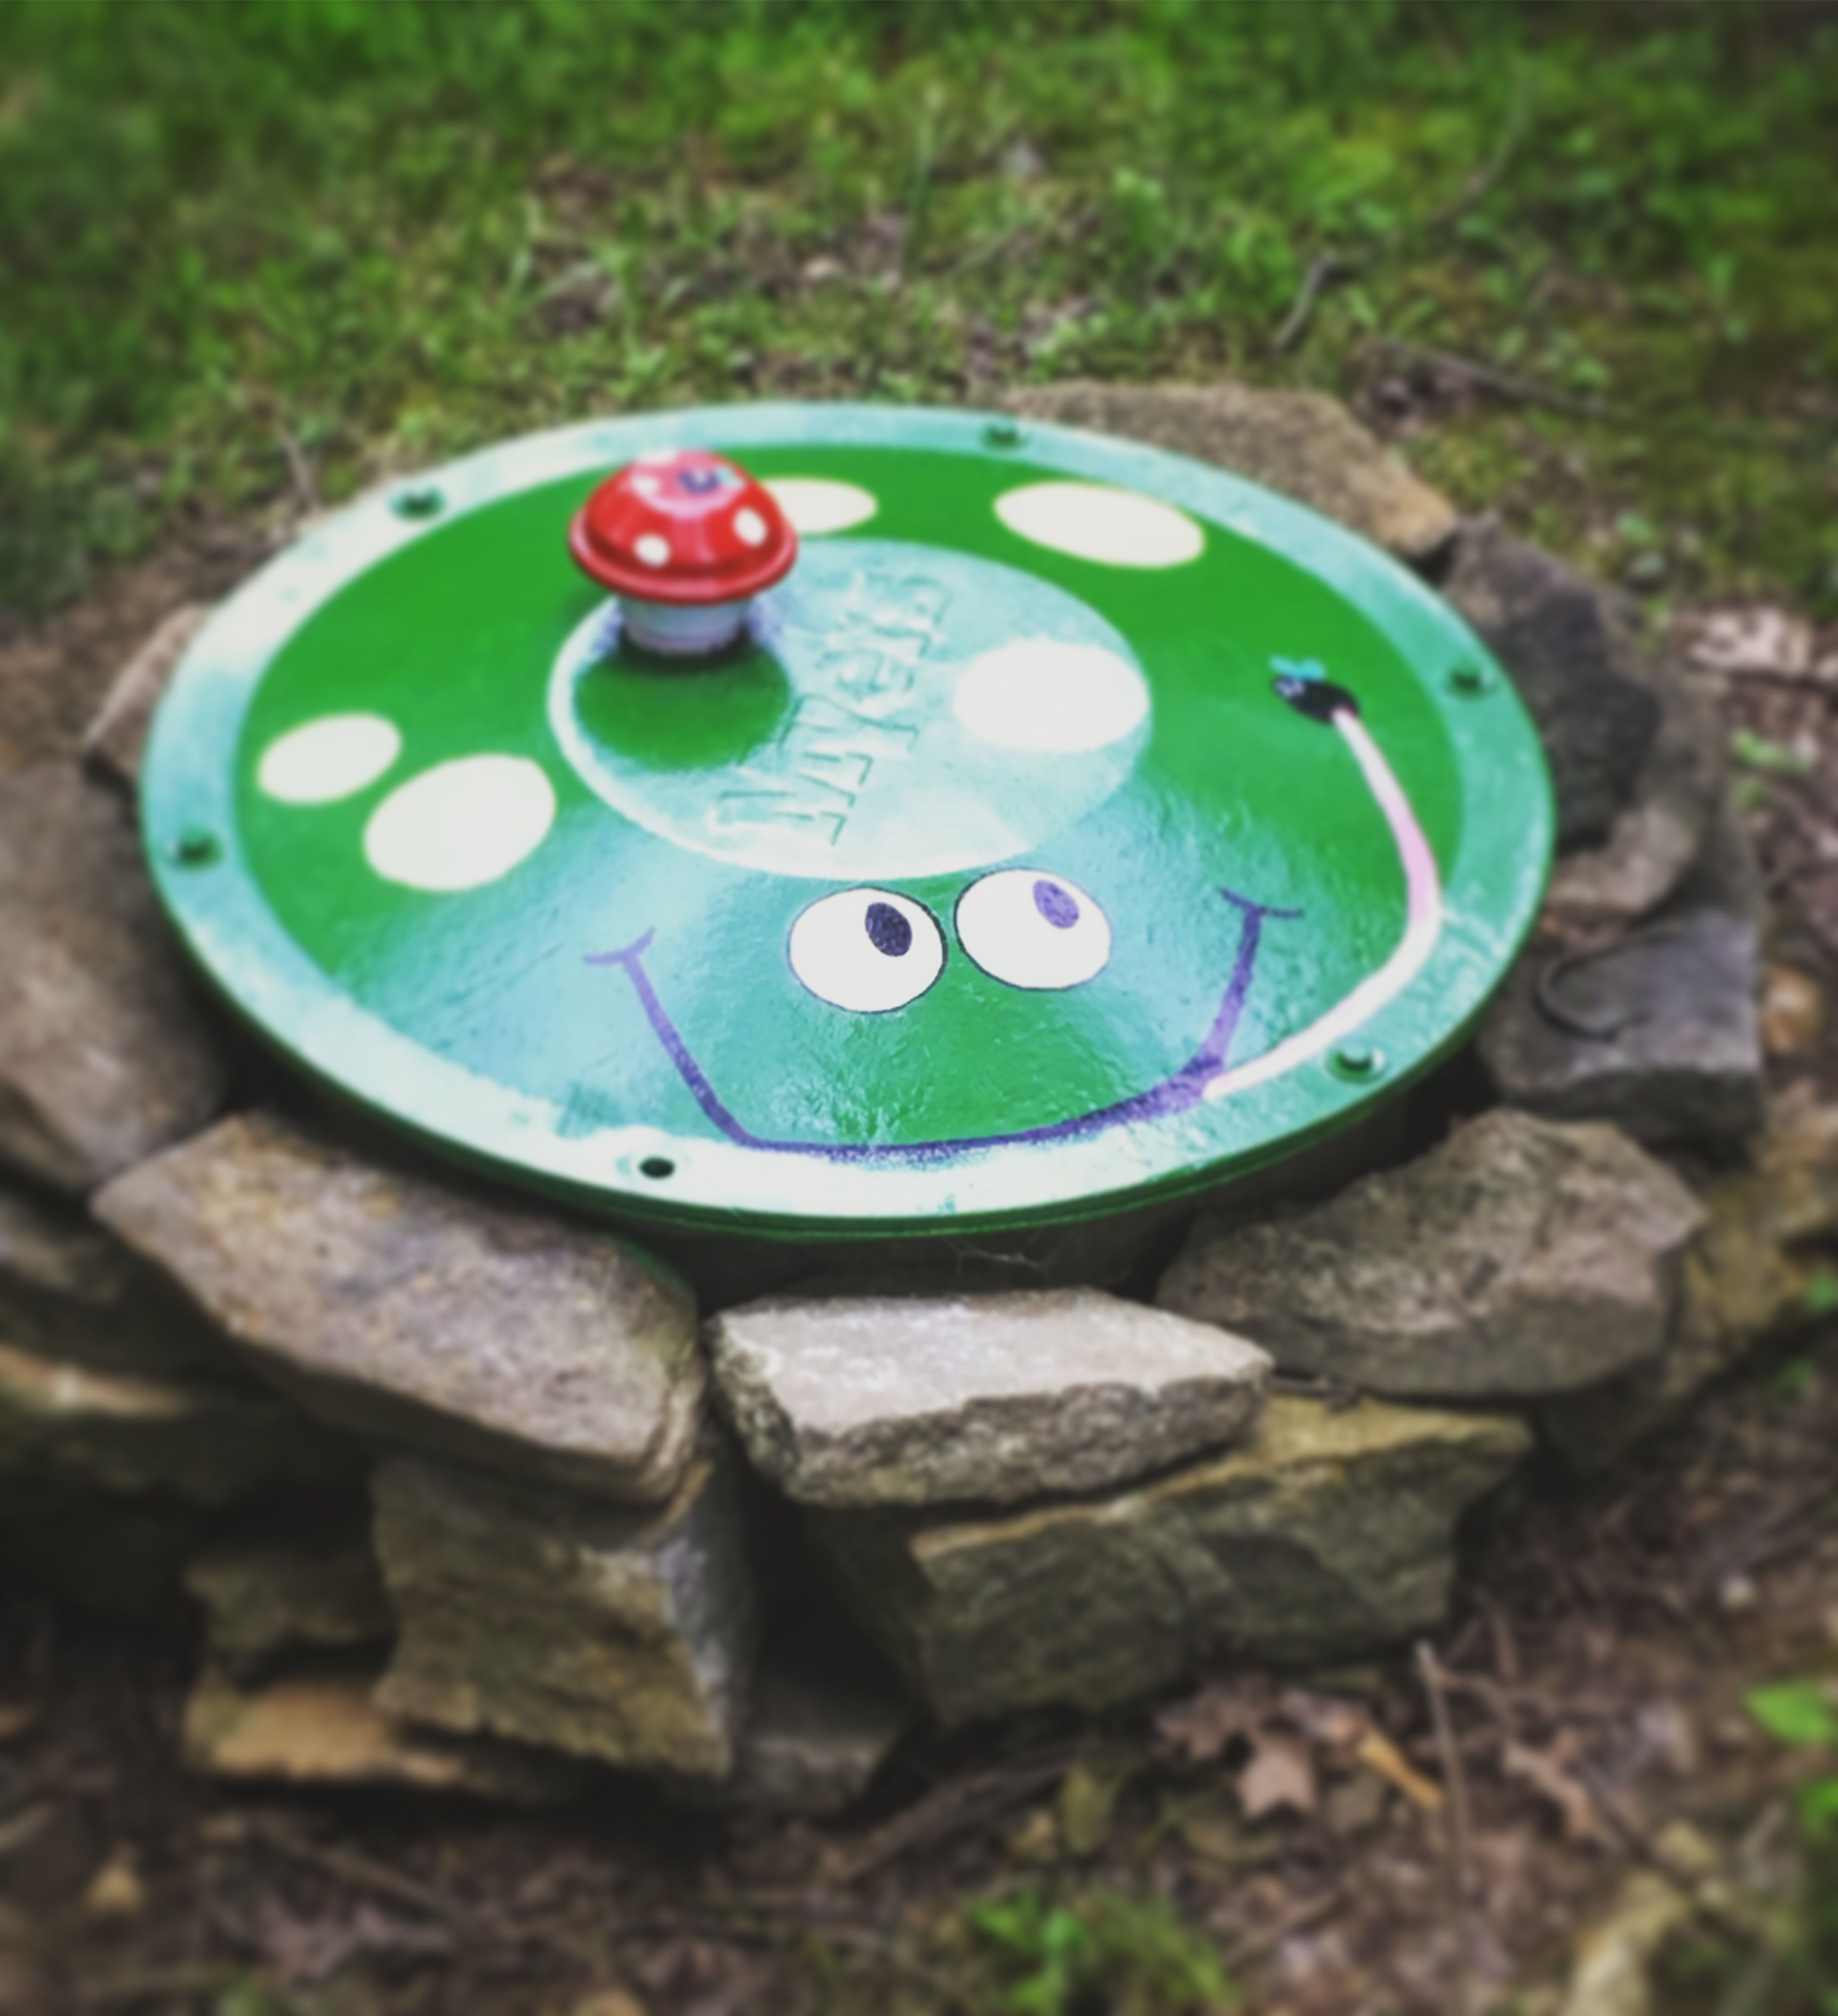 48 Simple Easy And Cheap Diy Garden Landscaping Ideas: Septic Tank Cover Got A Cute Makeover!